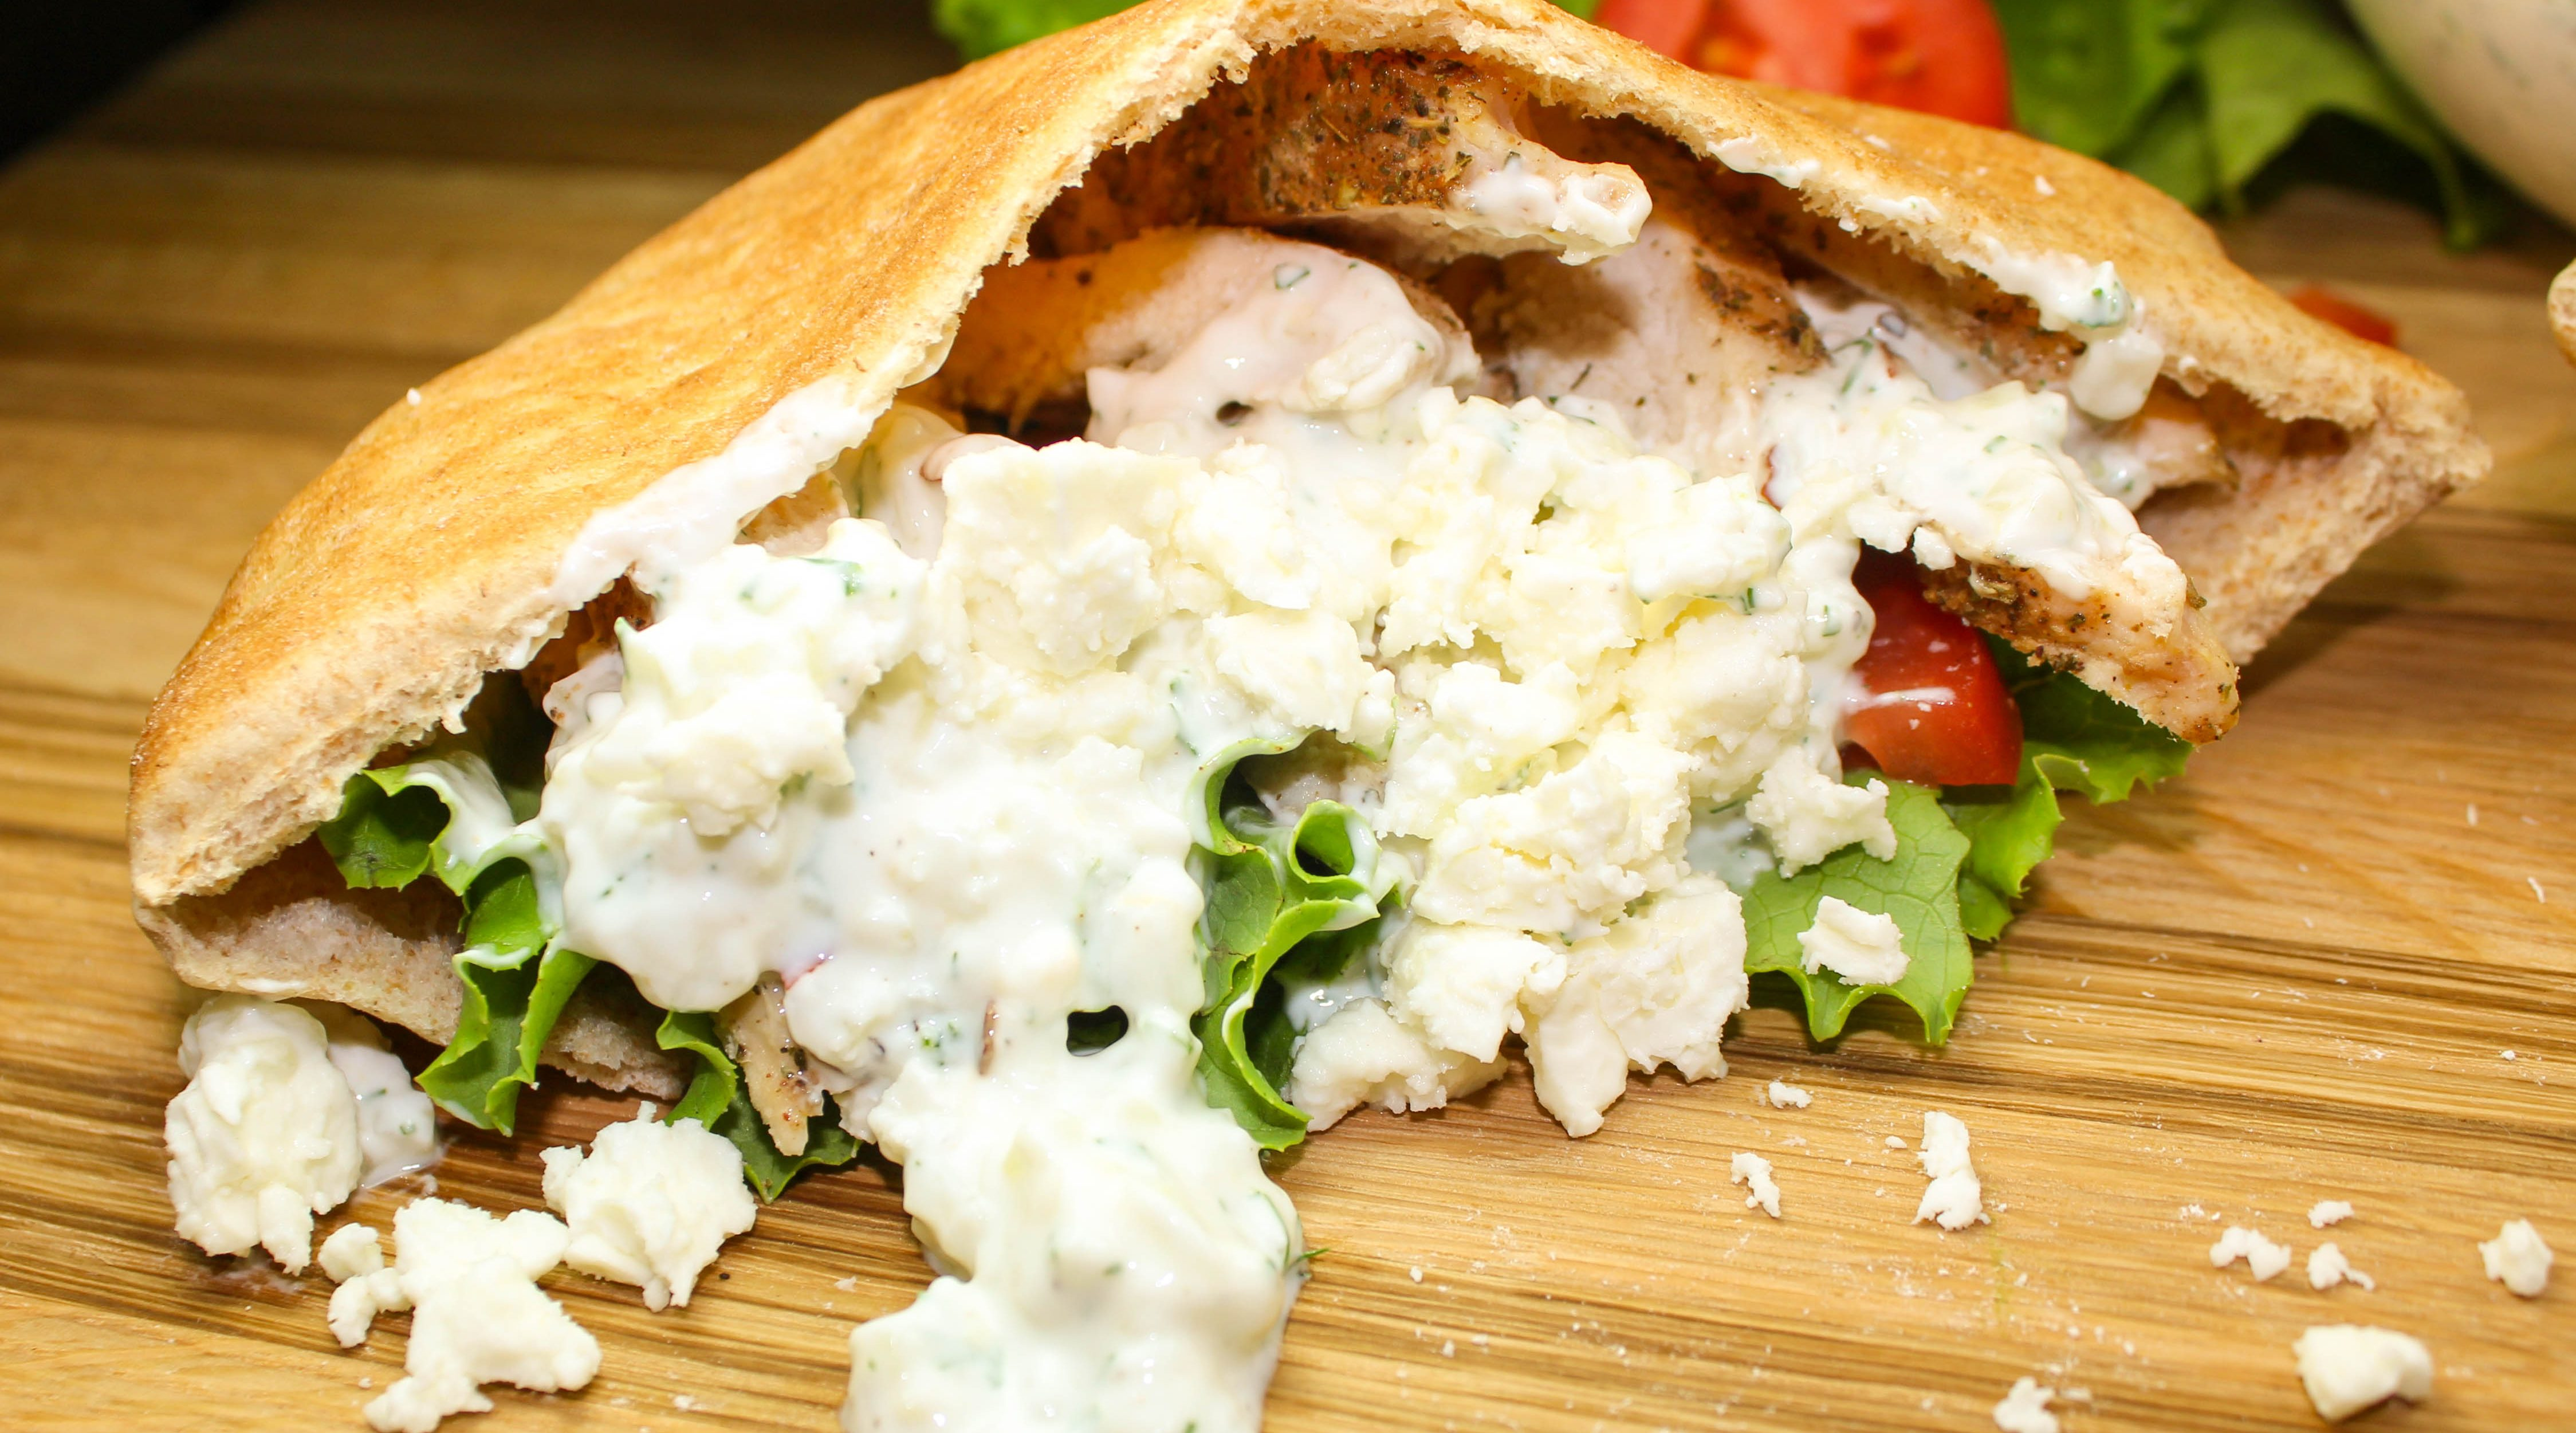 Healthy Chicken Gyros- Healthy version of traditional Gyro that's low fat but full of flavor. Greek seasoned chicken, wrapped in a whole wheat pita pocket & topped with Homemade Tzatziki Sauce. Great for a quick weeknight meal or for week day lunches! Weight Watcher friendly (6 SmartPoints)!